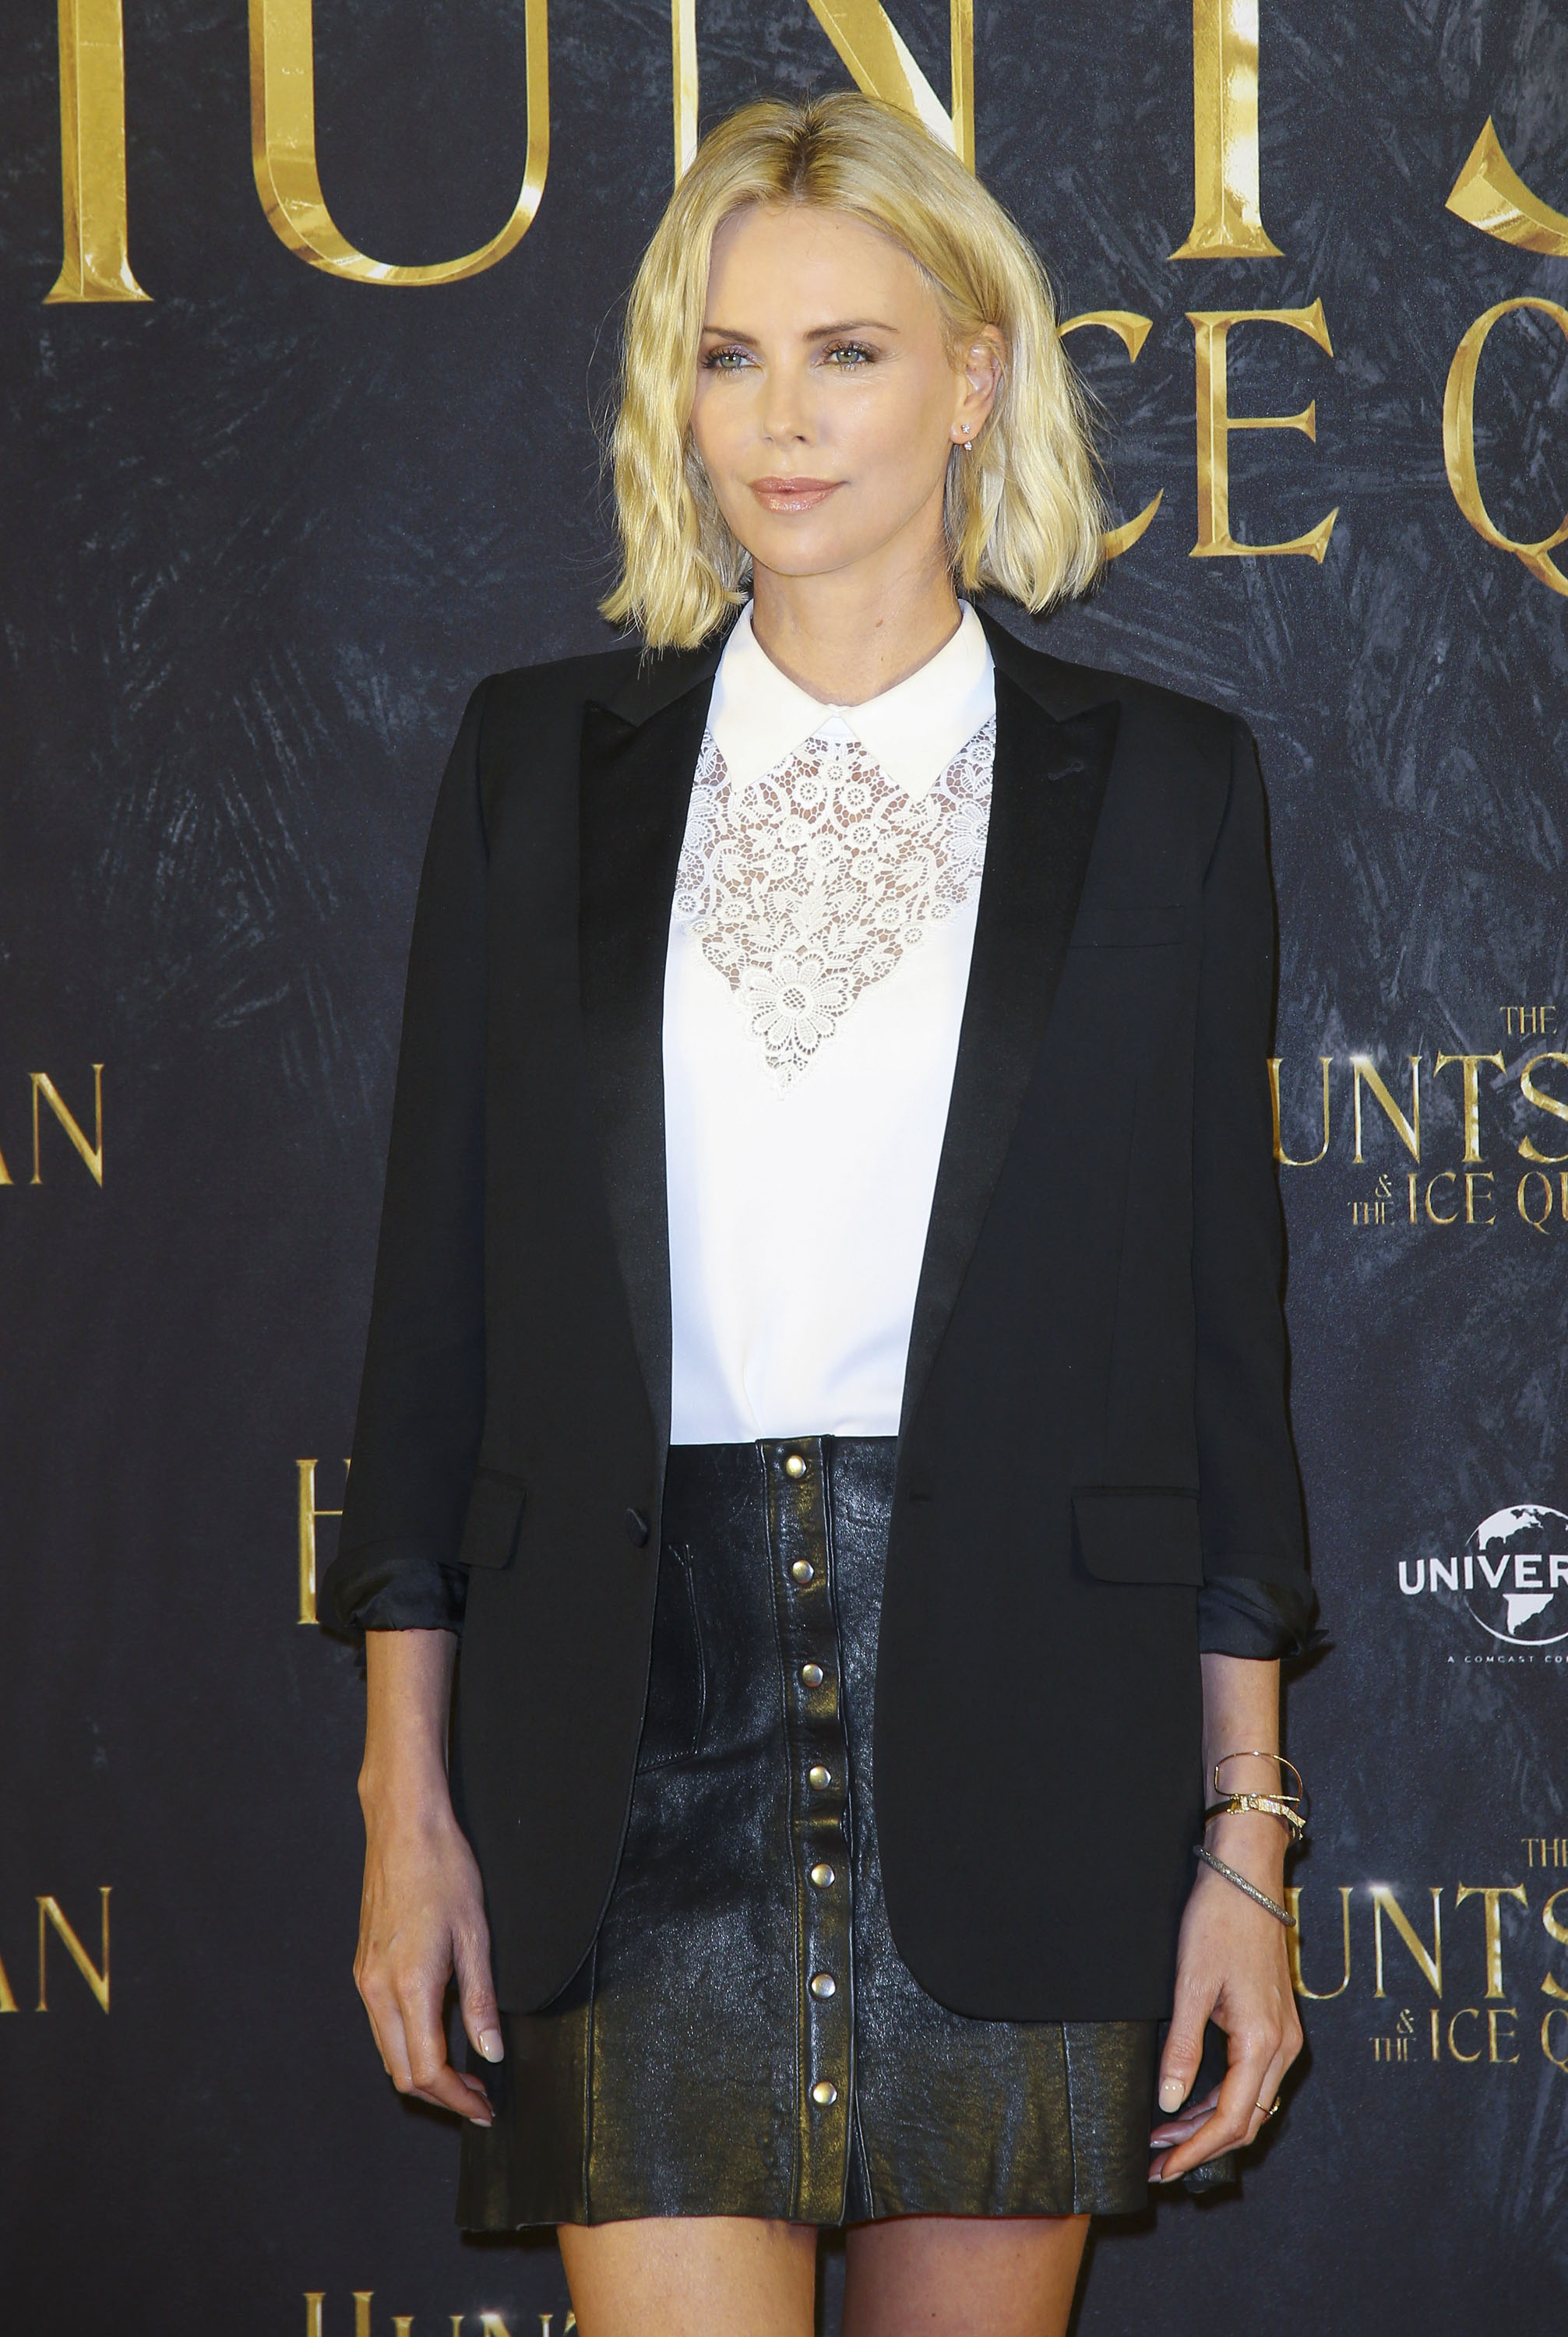 Charlize-Theron-at-The-Huntsman-The-Ice-Queen-Photo-Call-